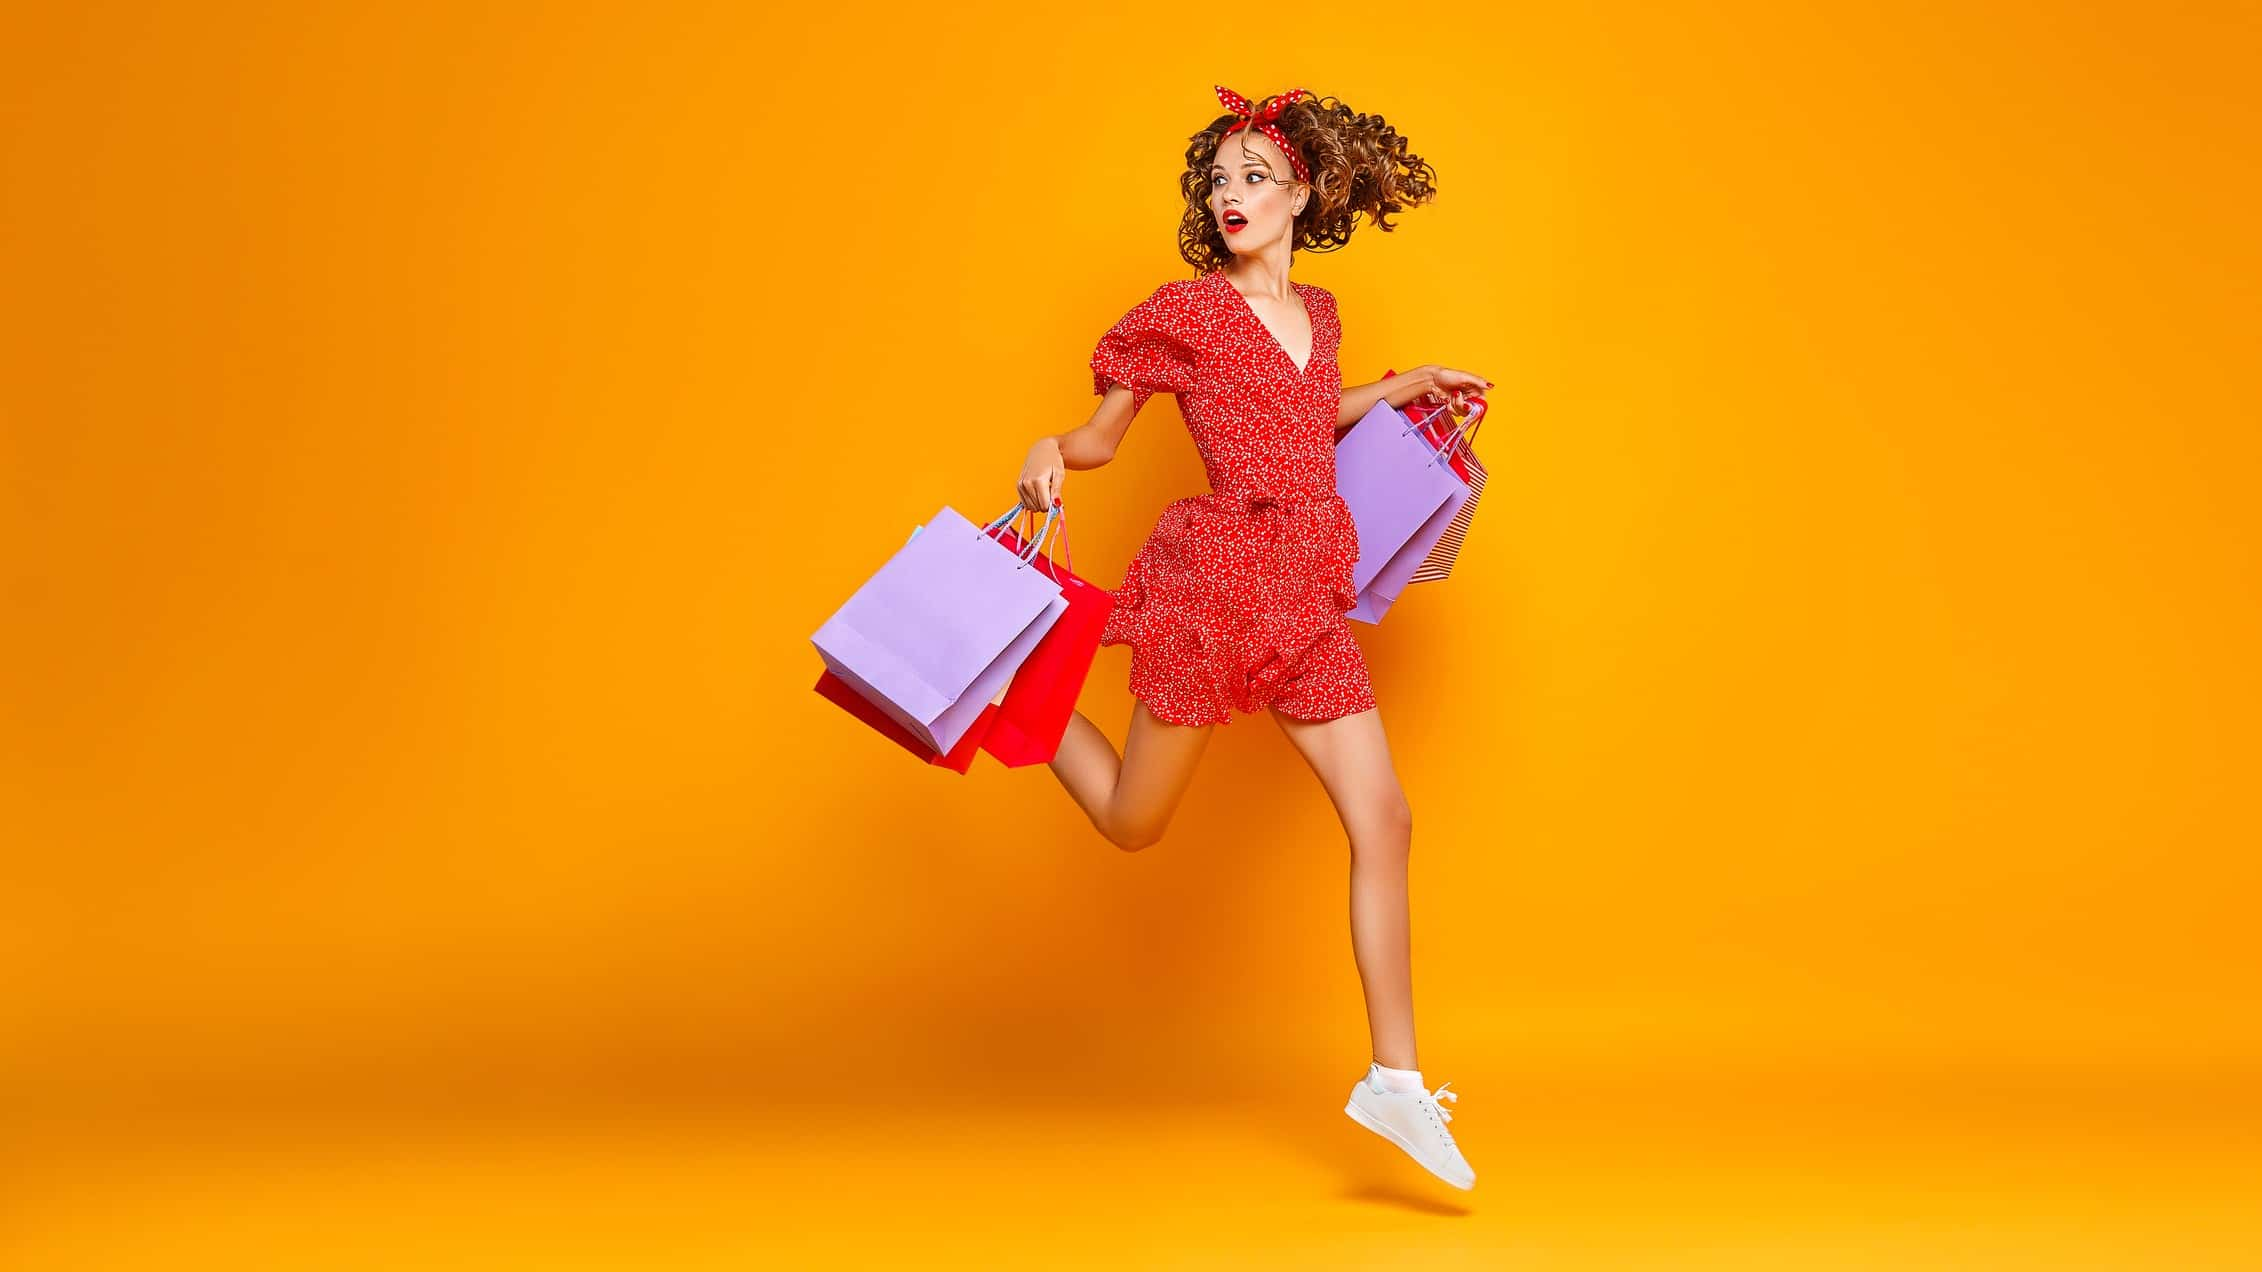 asx retail shares represented by woman excitedly holding shopping bags